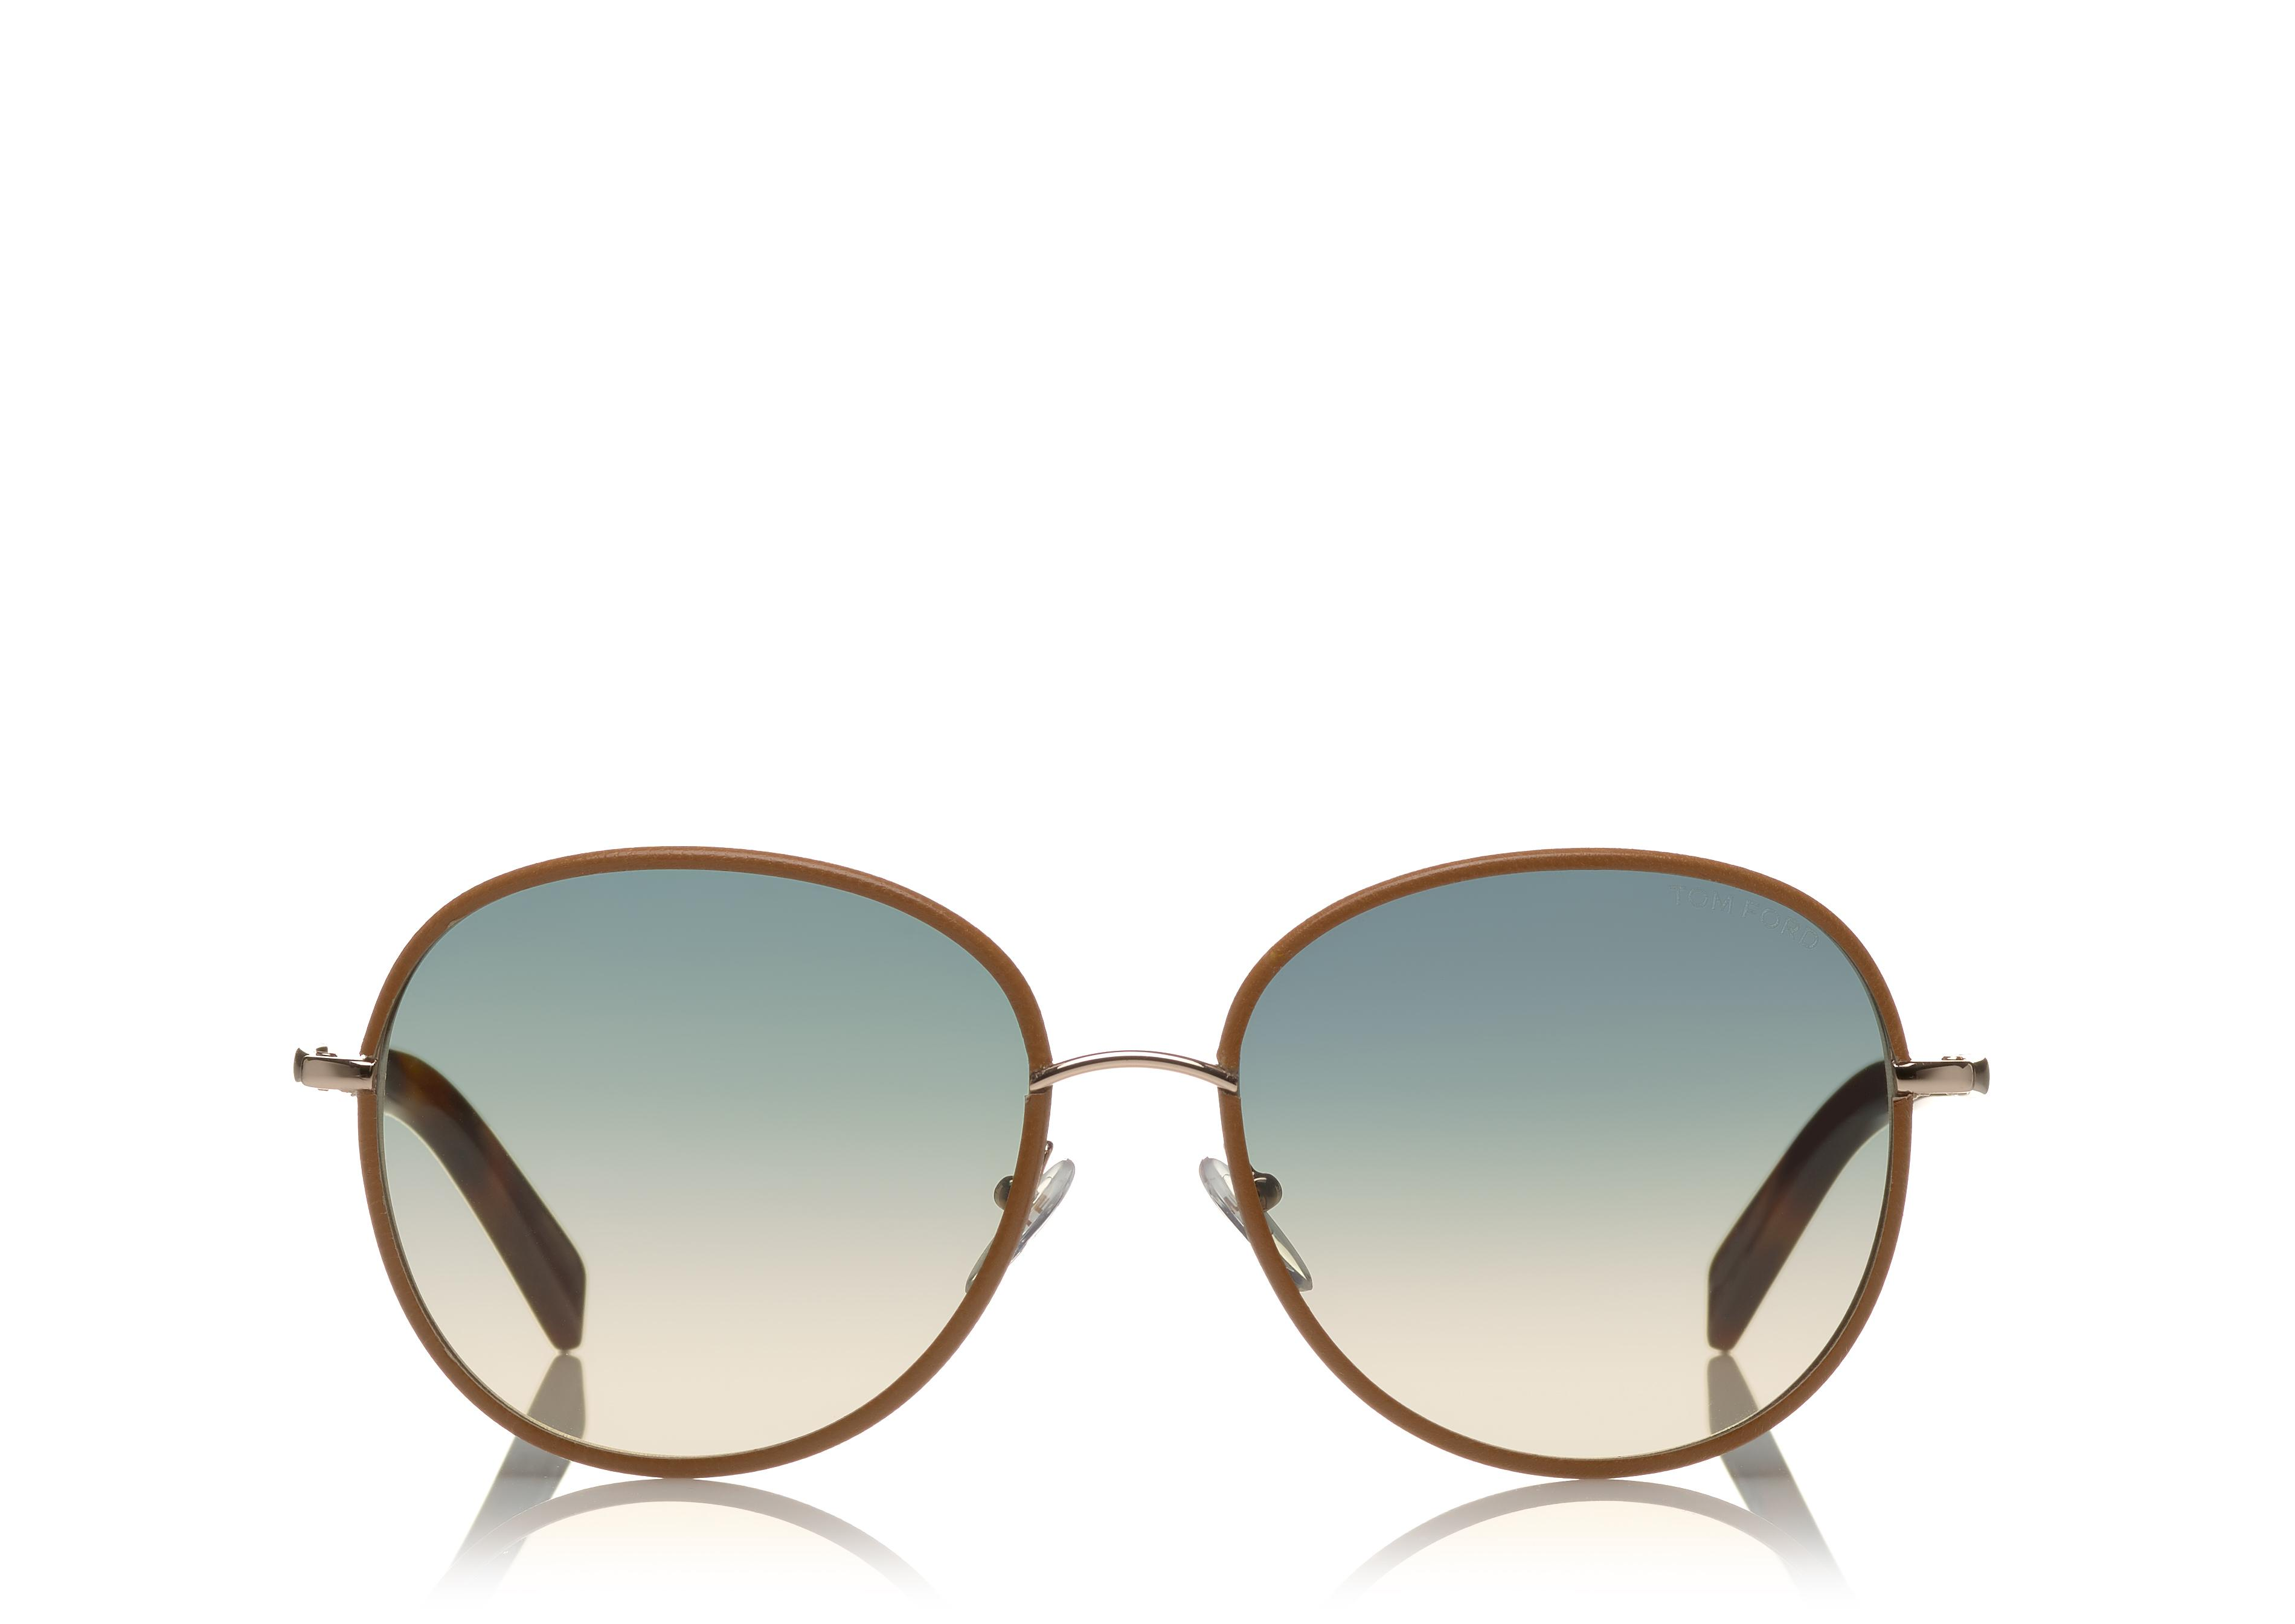 GEORGIA SUNGLASSES IN LEATHER A thumbnail